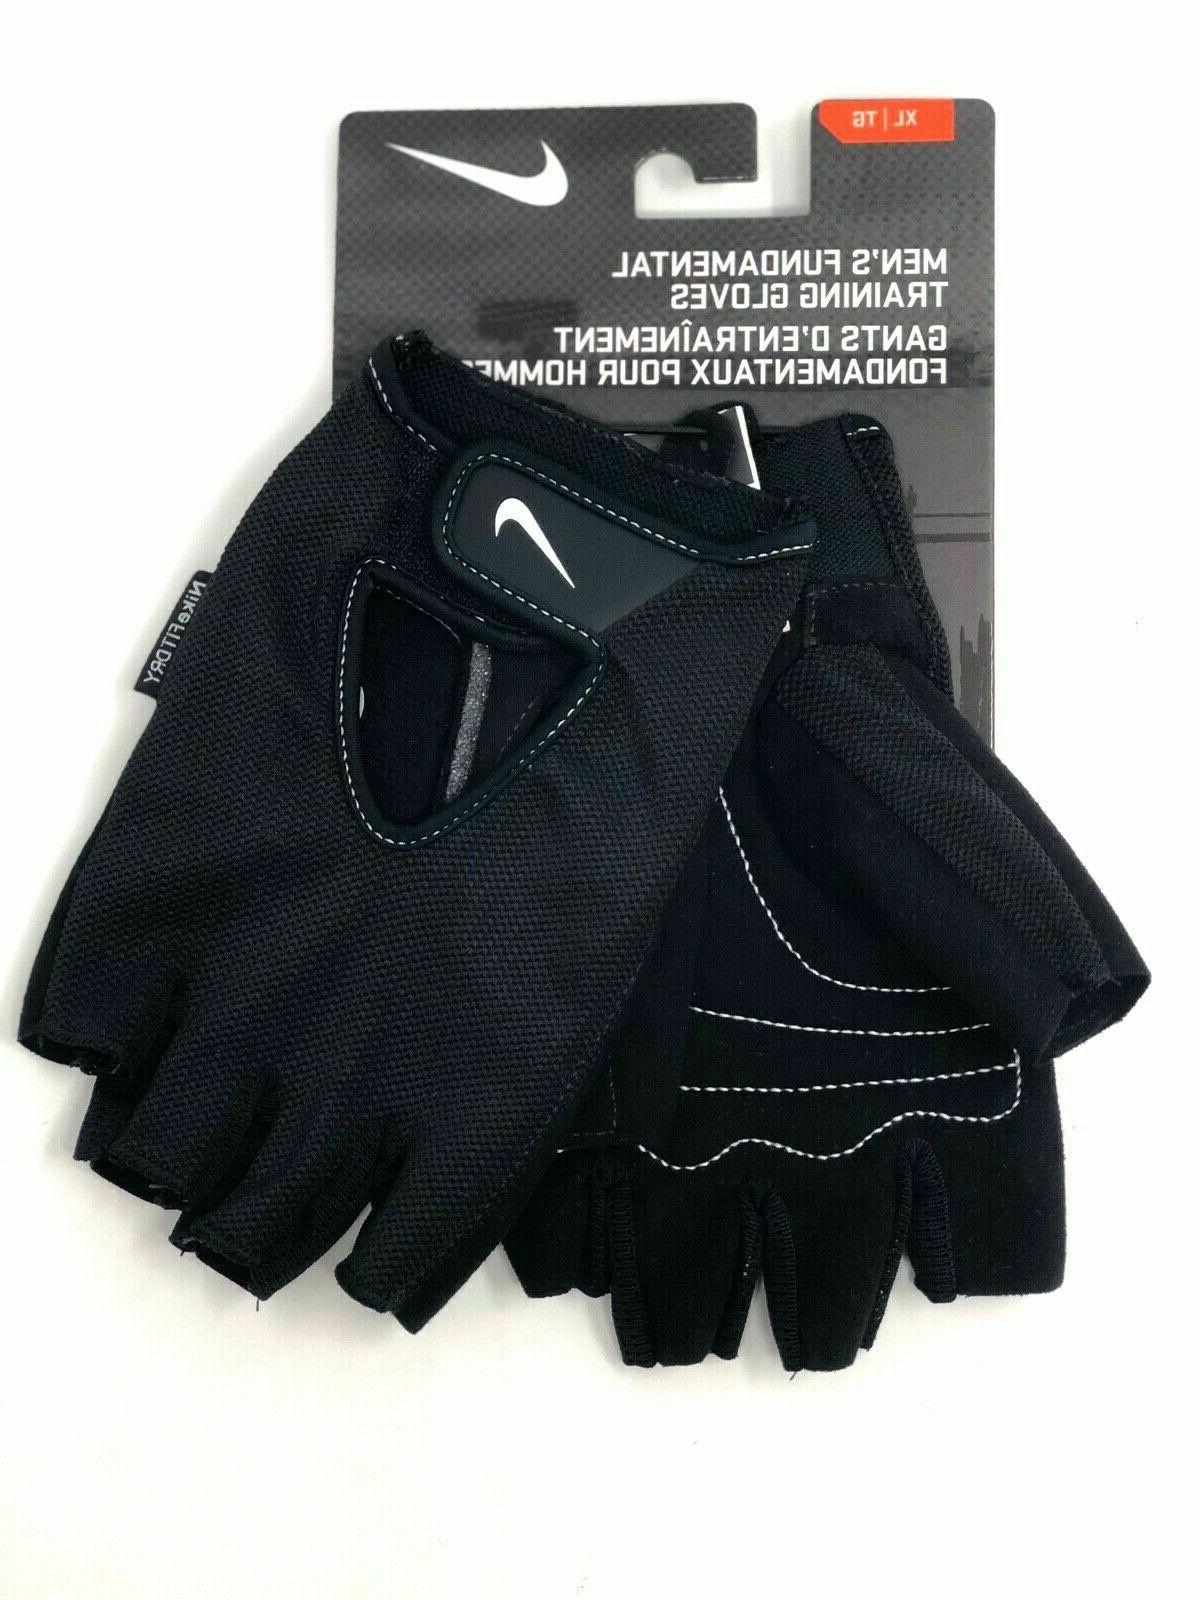 training gloves half finger men s workout